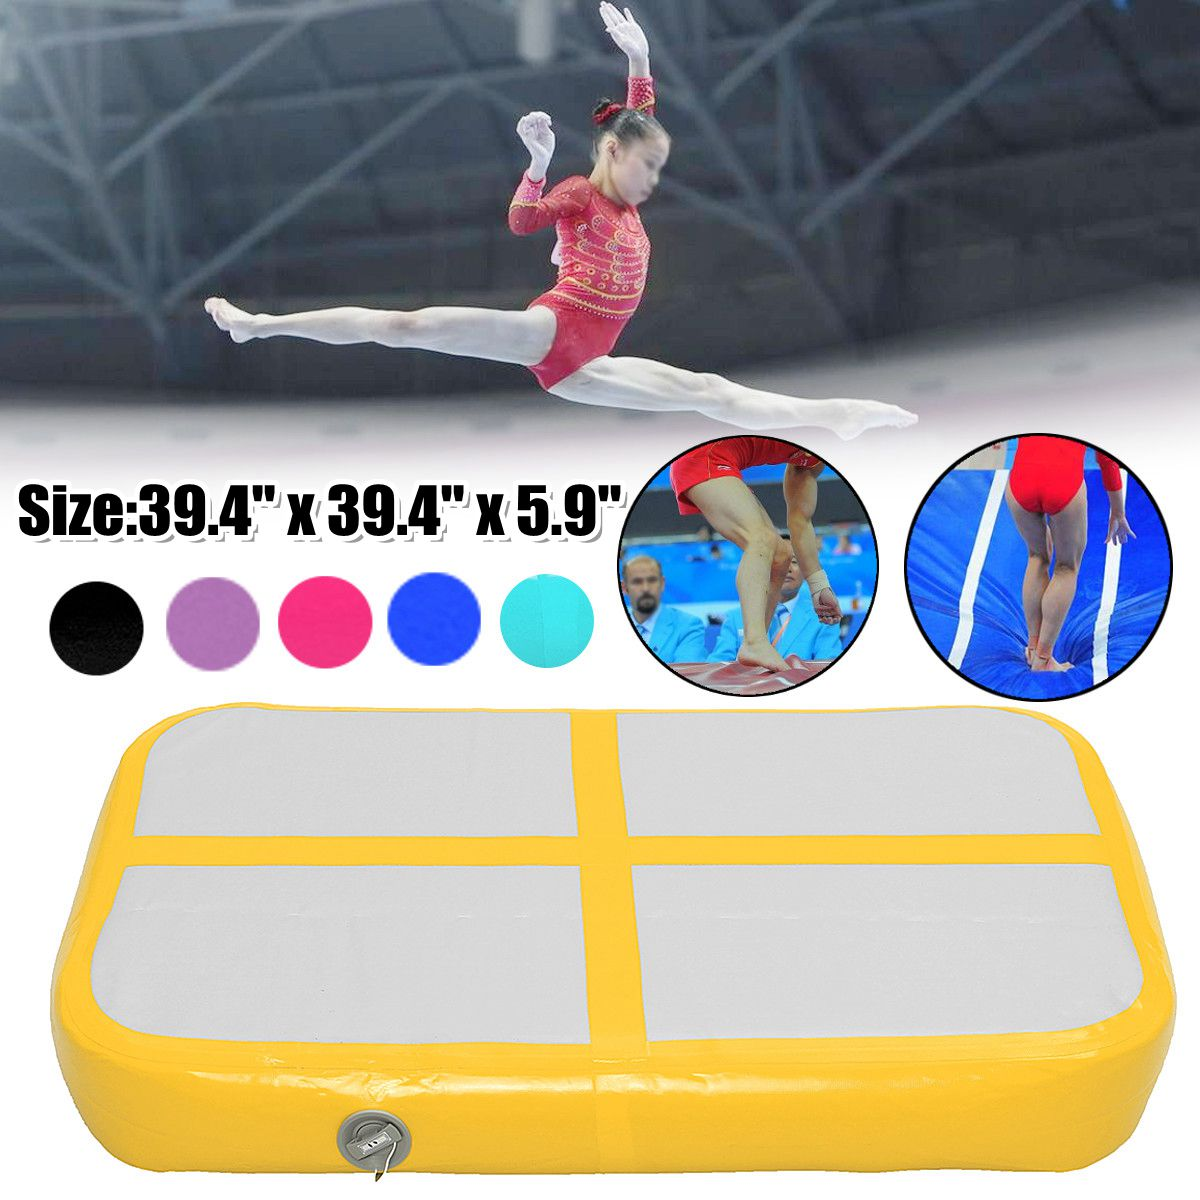 100x60x10cm Air Tumbling Track Roller Home Training Inflatable Matfor Gymnastics Gym Exercise Mat Air Track Tumbling Mat100x60x10cm Air Tumbling Track Roller Home Training Inflatable Matfor Gymnastics Gym Exercise Mat Air Track Tumbling Mat